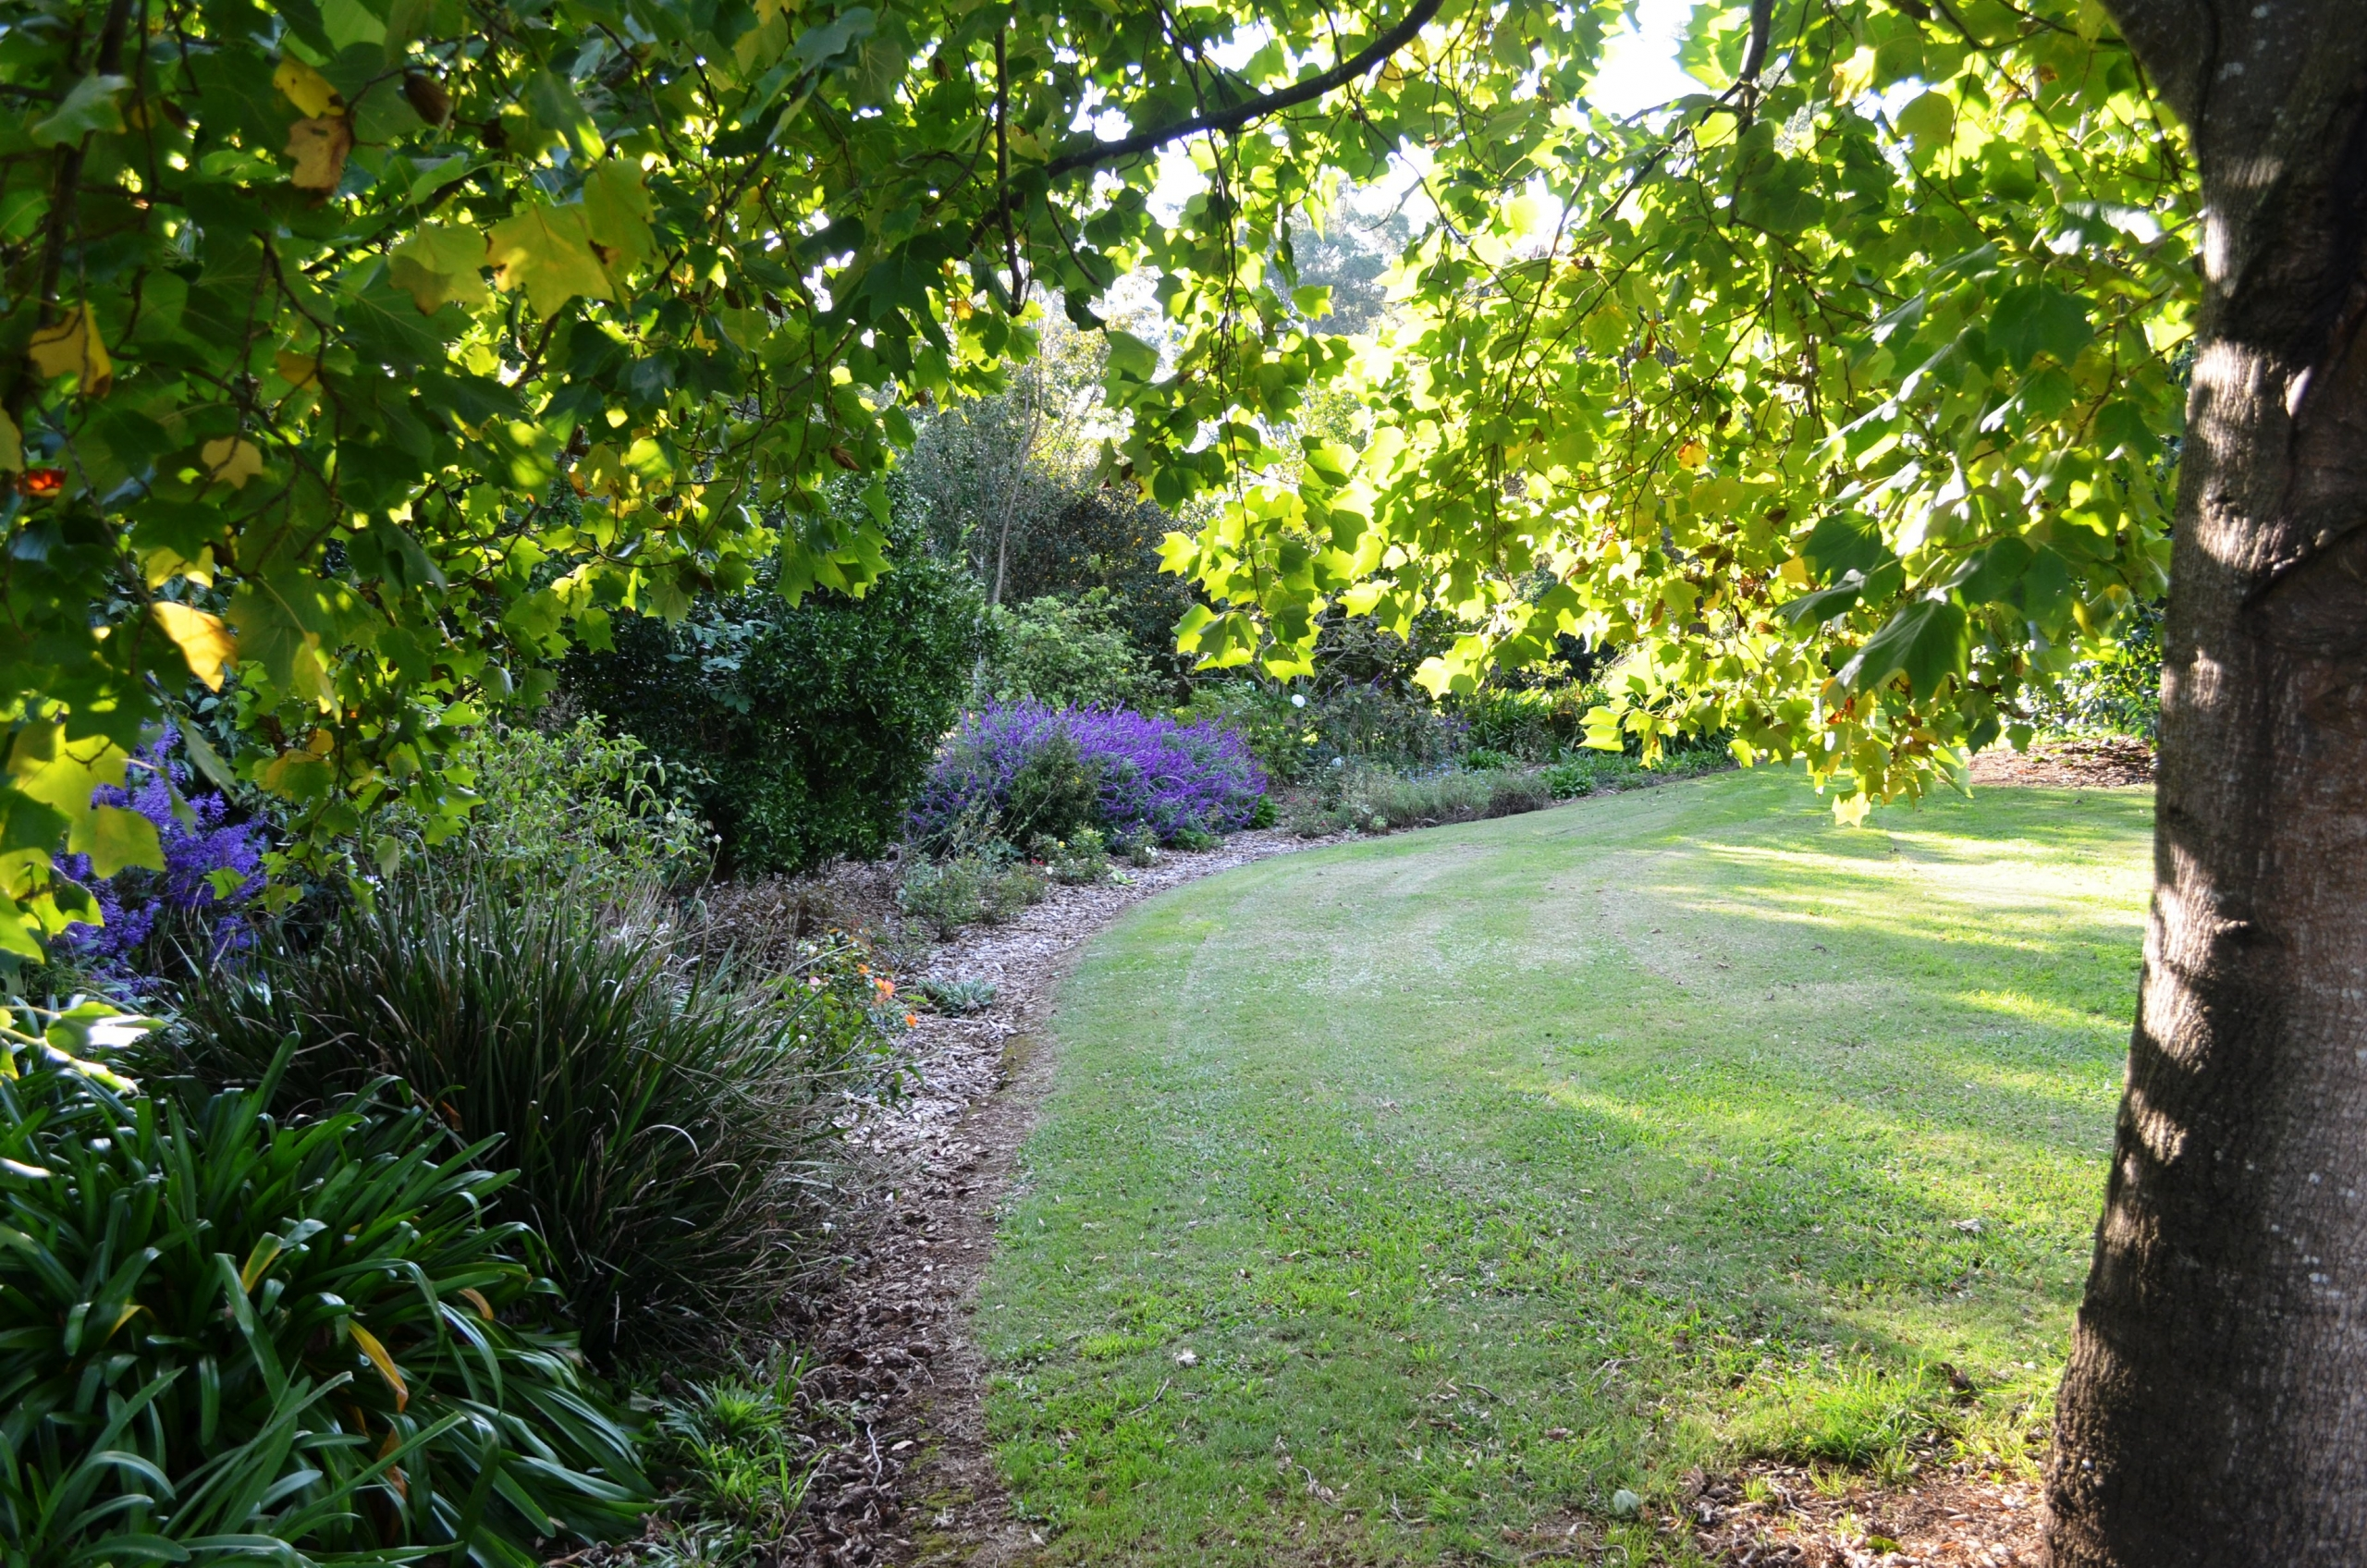 Come and take a stroll through our beautiful gardens